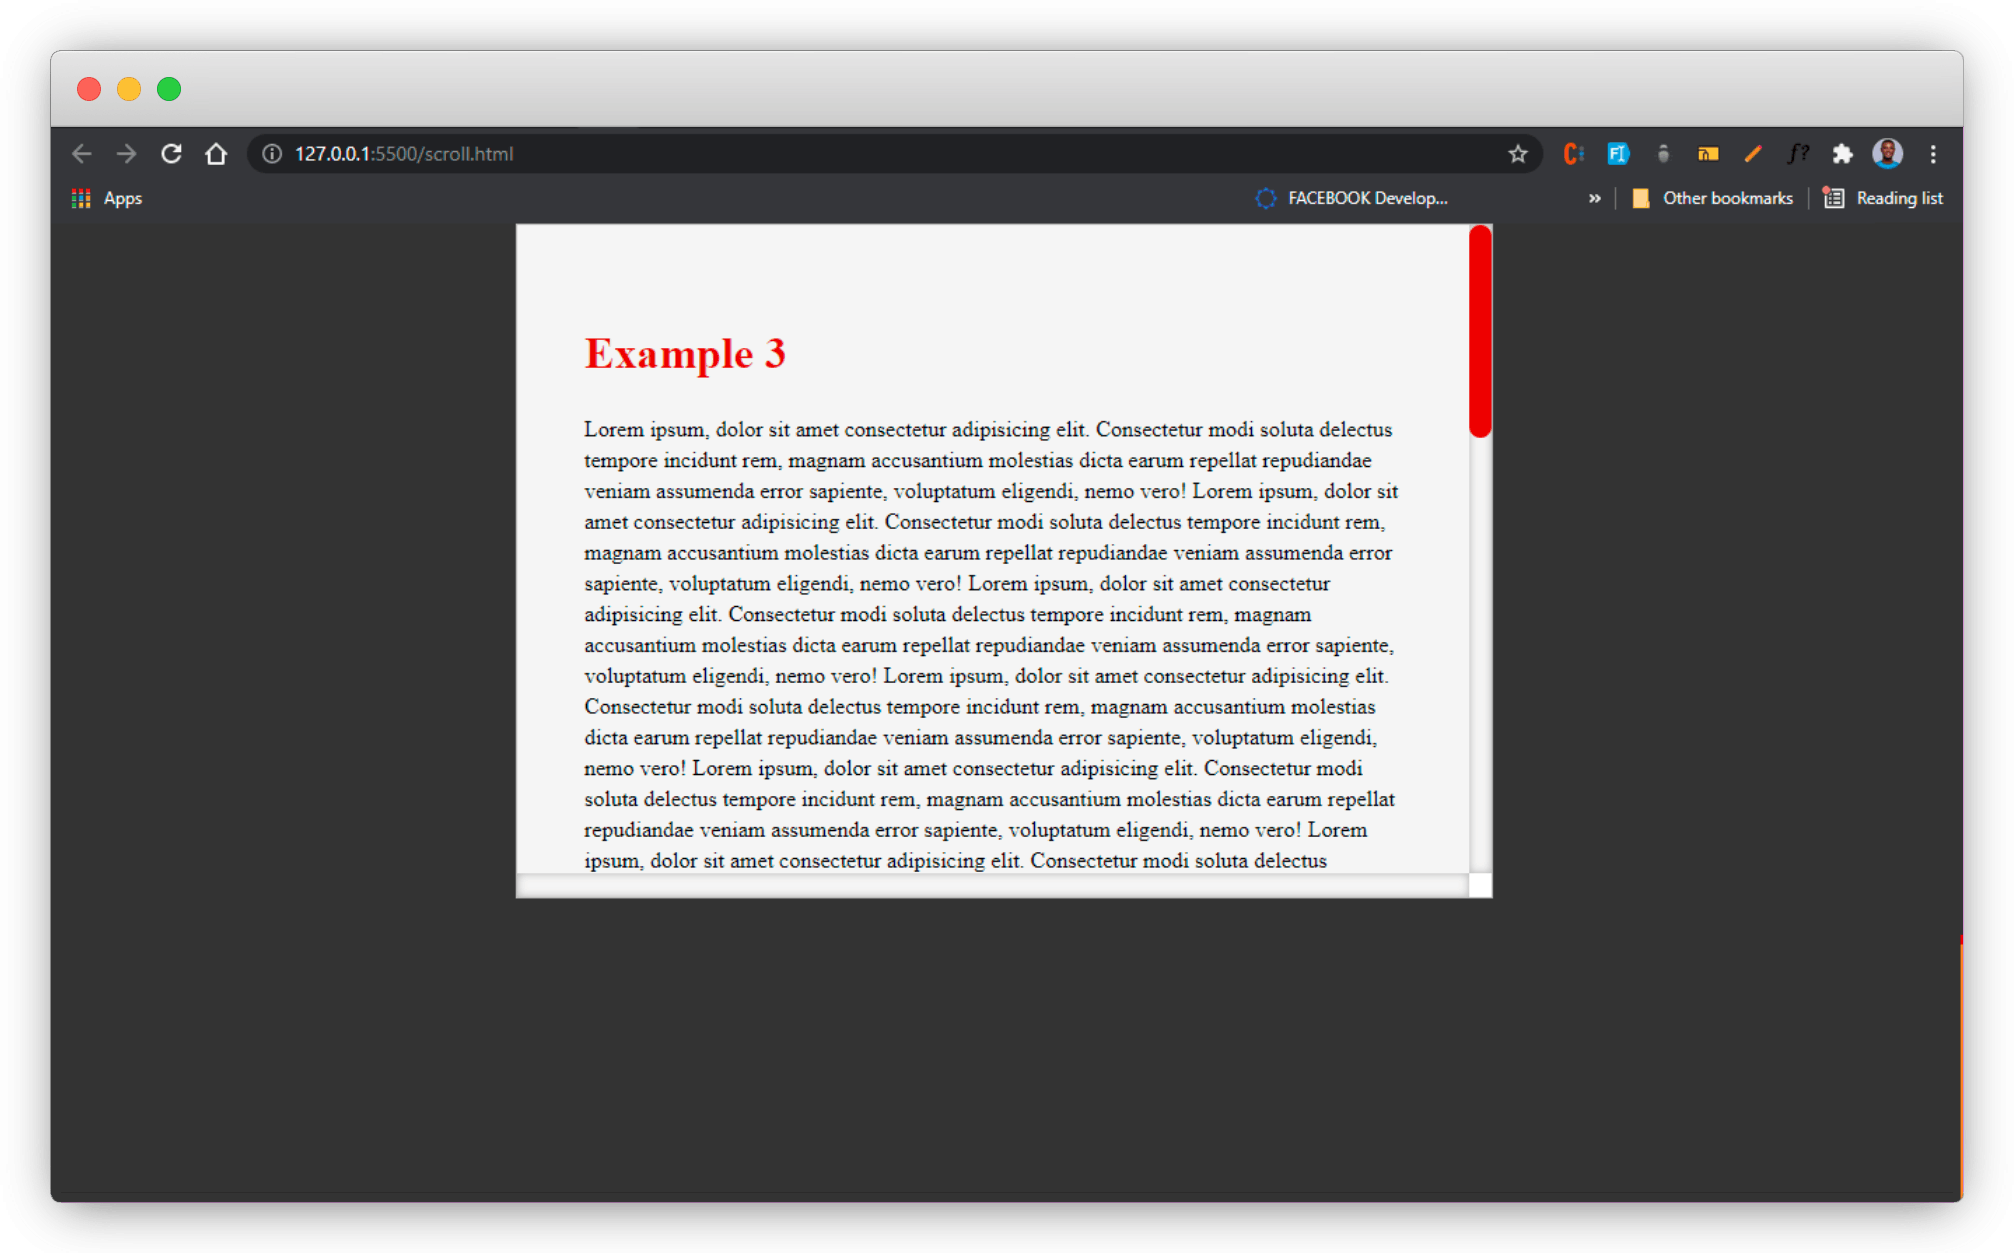 example 3 on browser